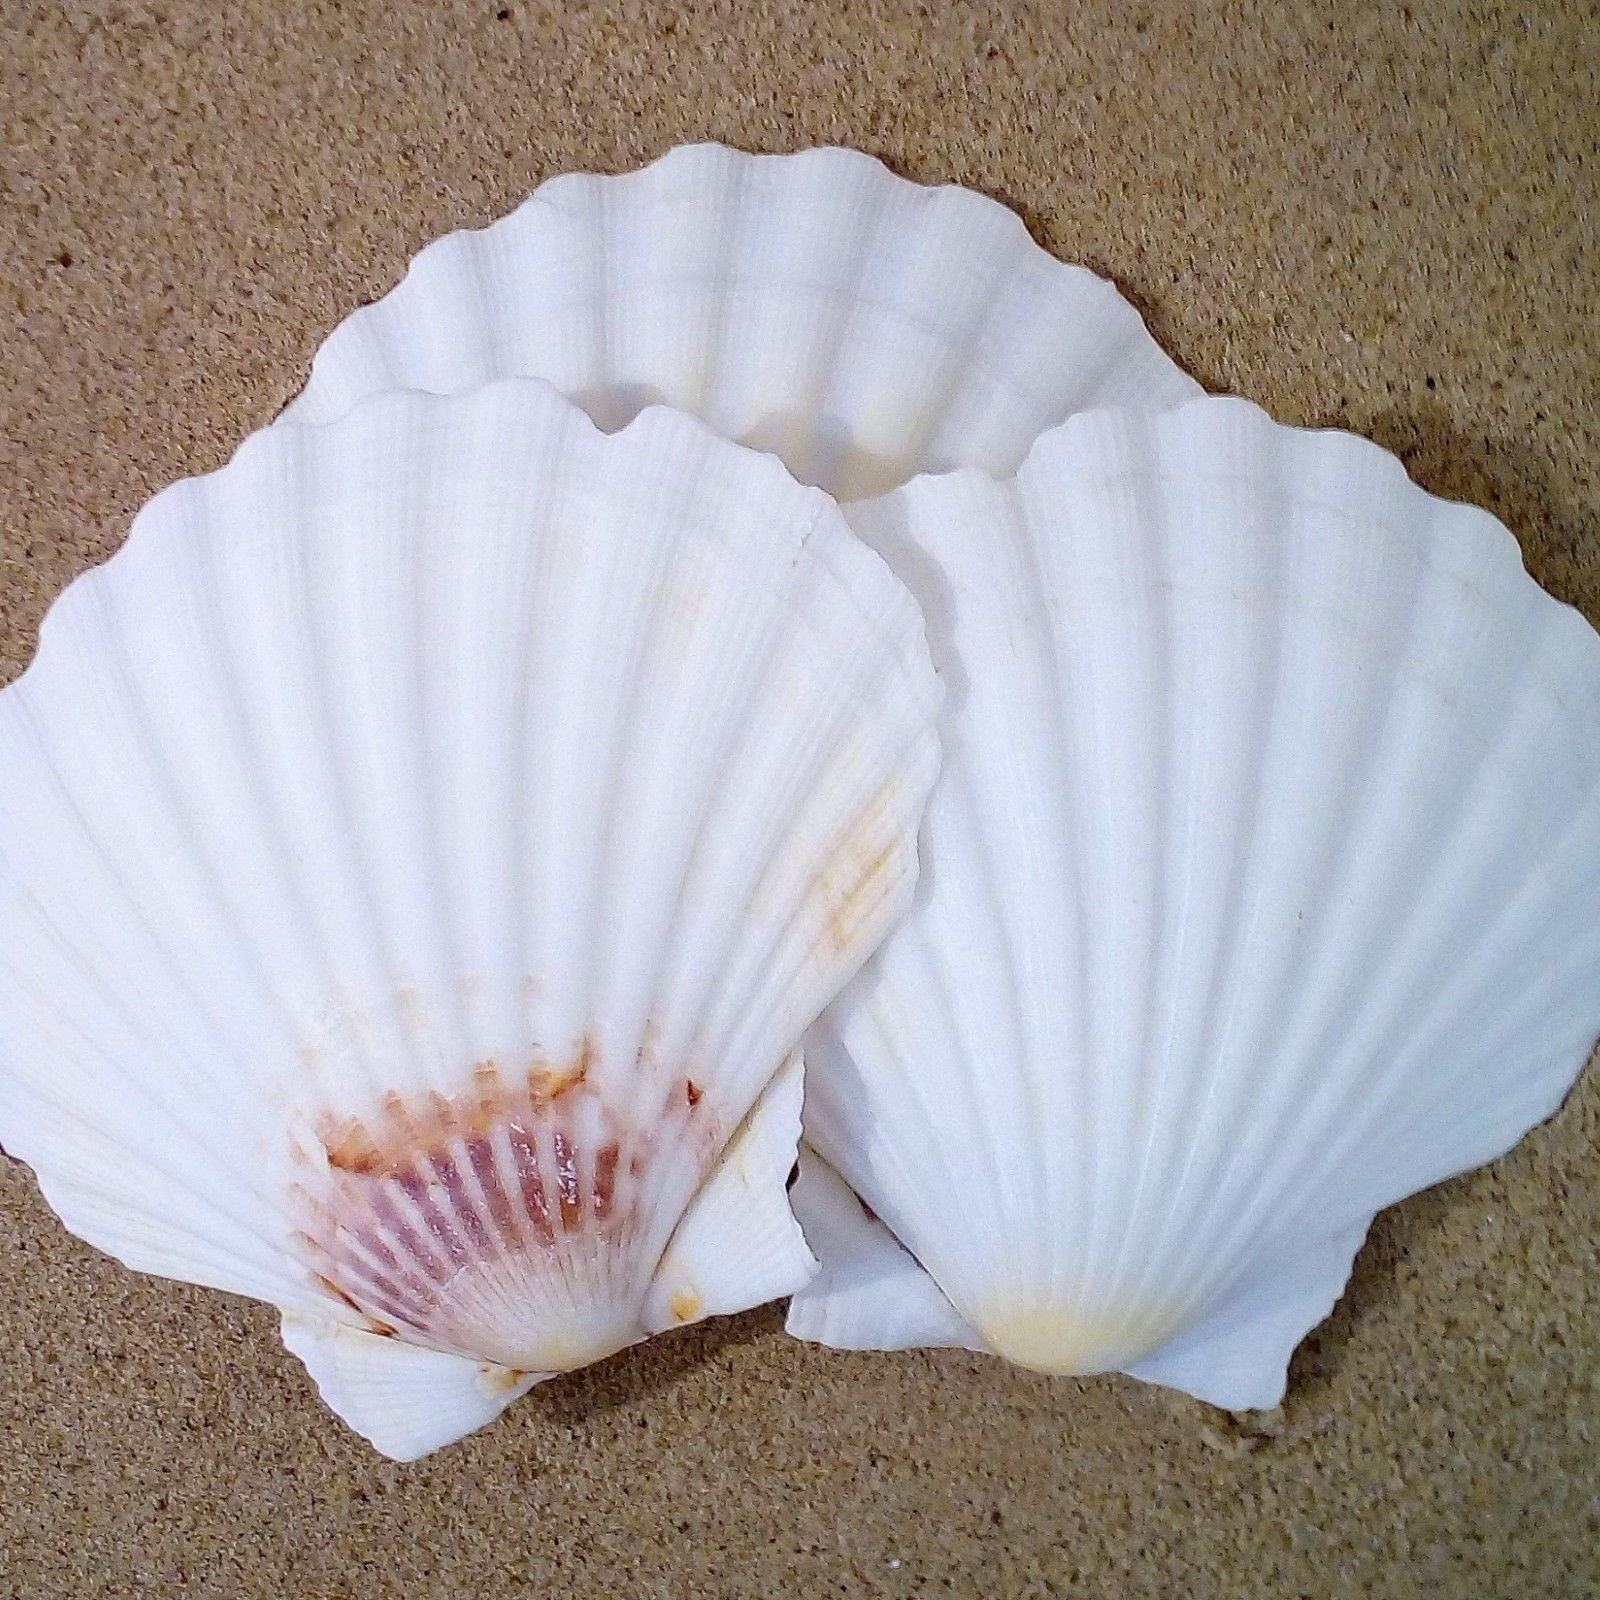 Scallop Shells (Washed) 9 - 11cm